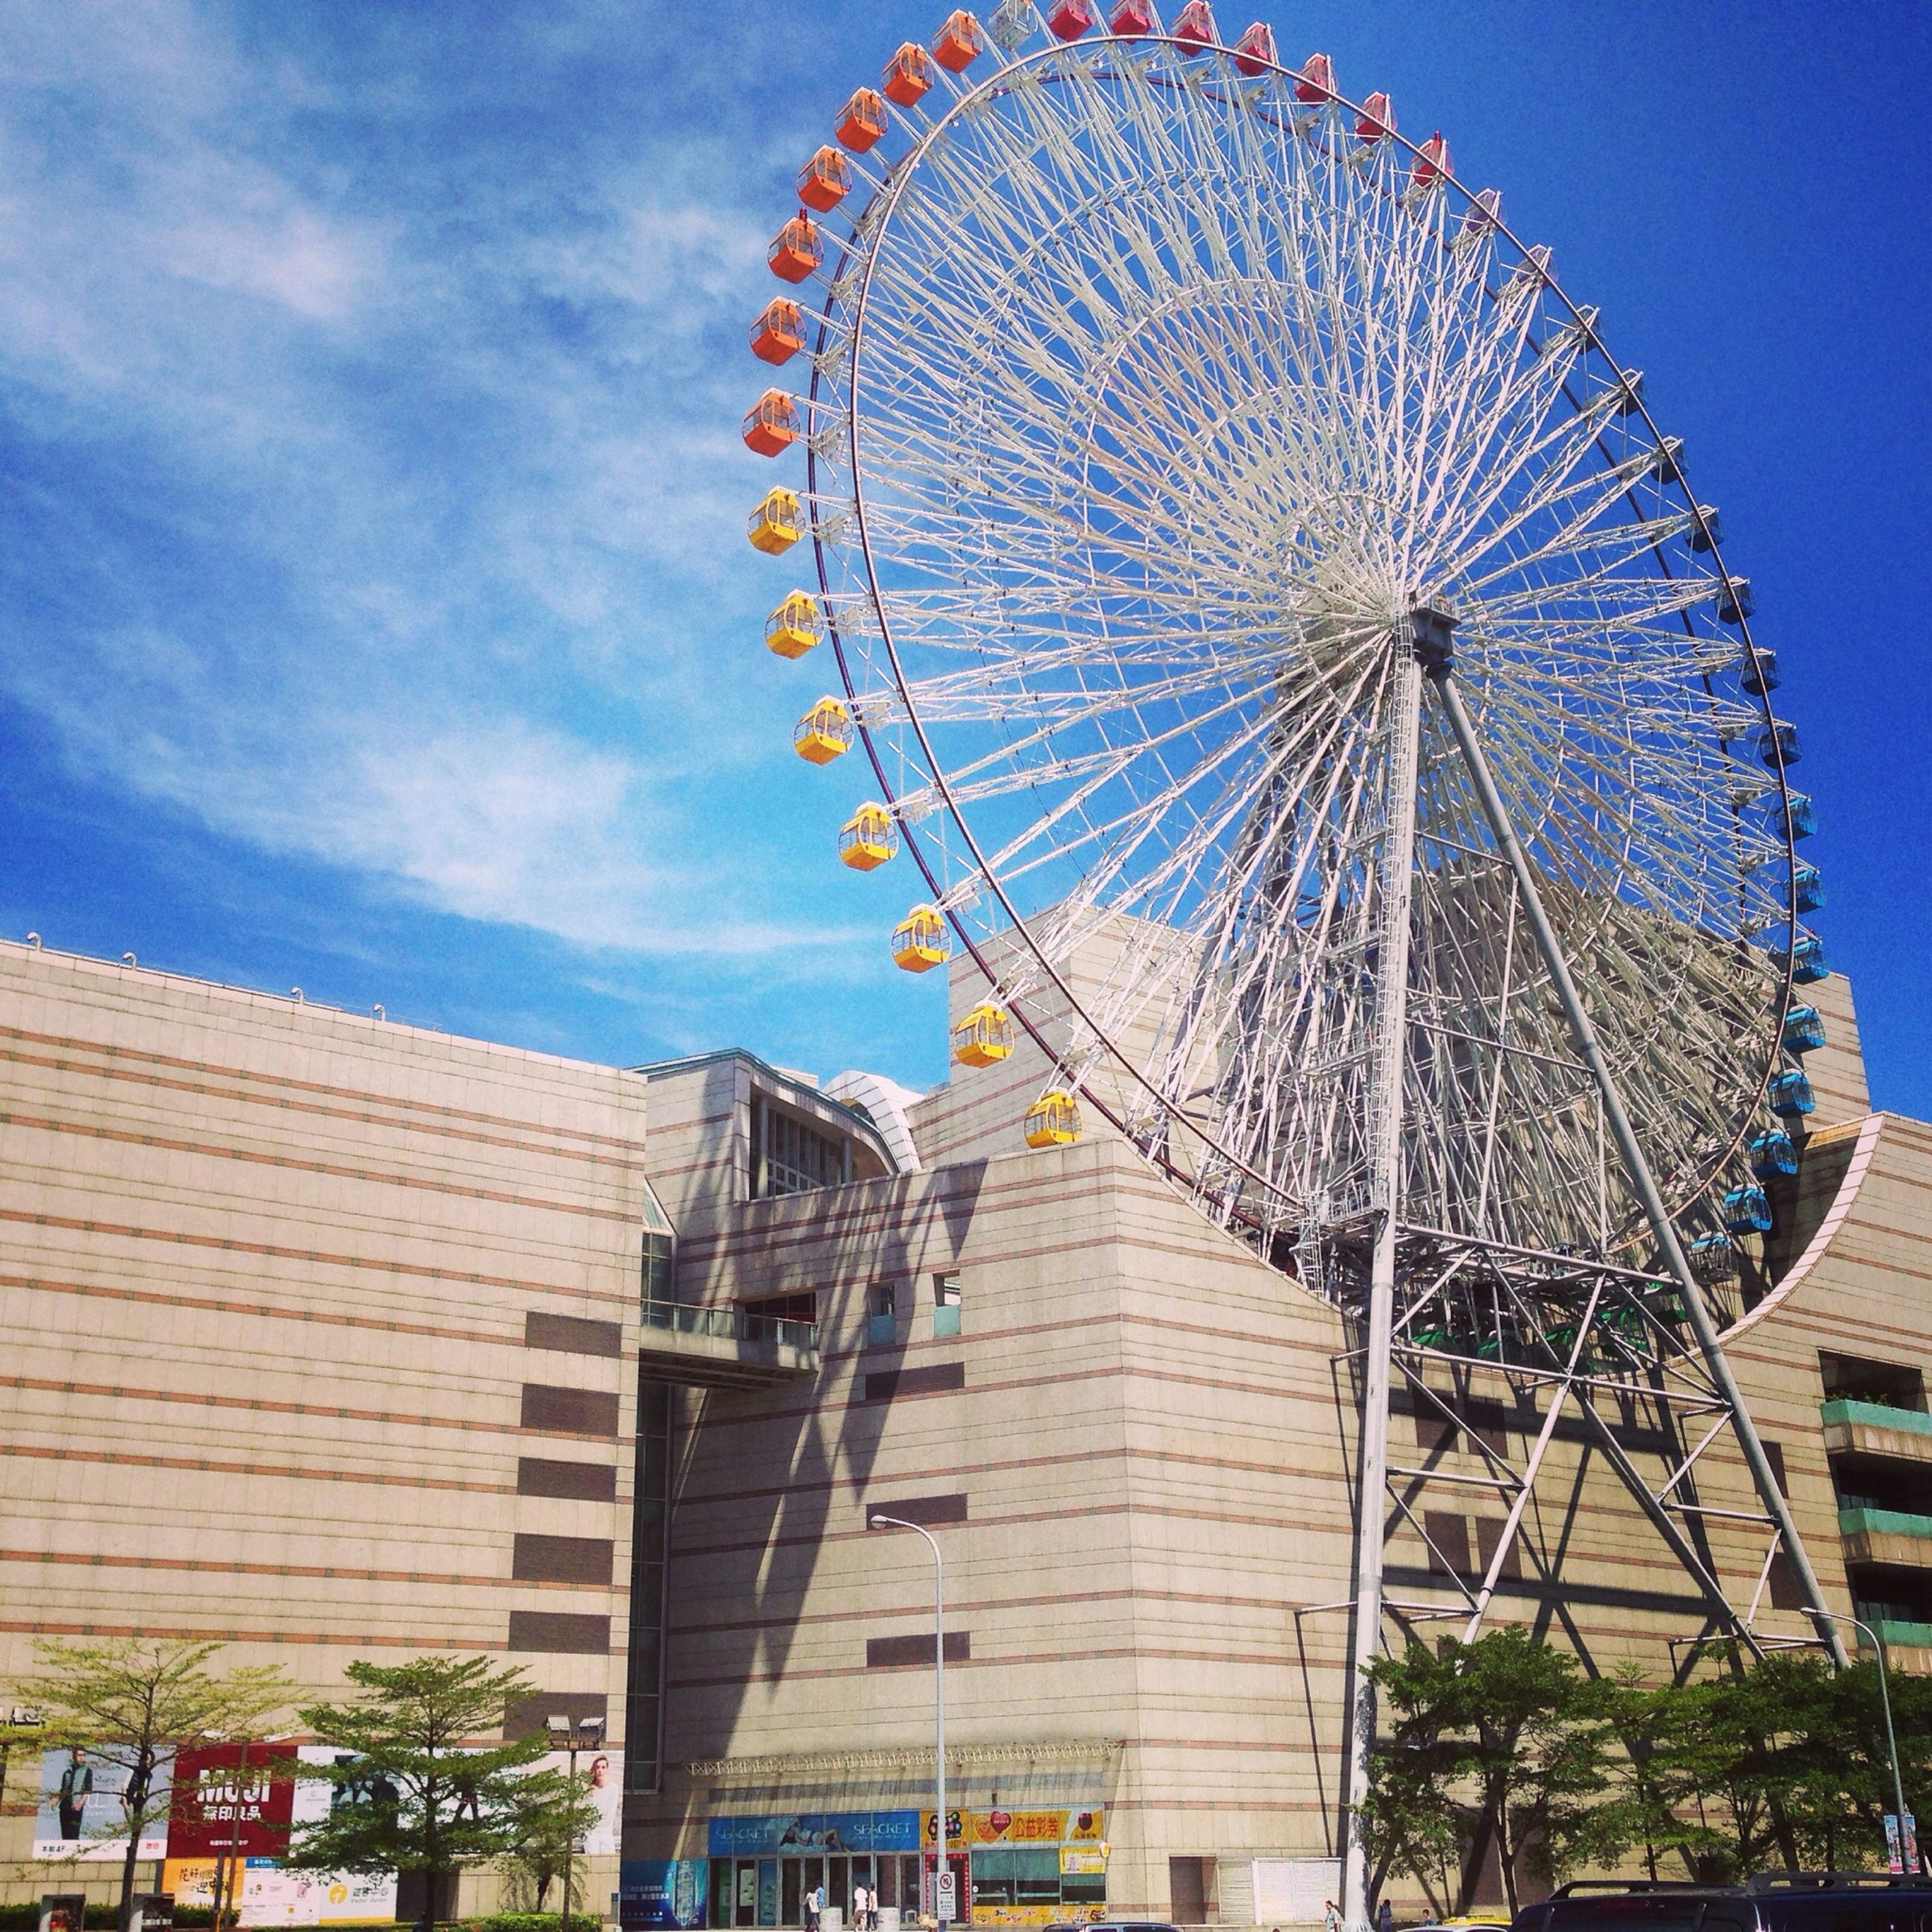 low angle view, built structure, architecture, ferris wheel, amusement park, arts culture and entertainment, building exterior, sky, amusement park ride, blue, day, outdoors, no people, cloud - sky, cloud, sunlight, large, clear sky, tall - high, metal